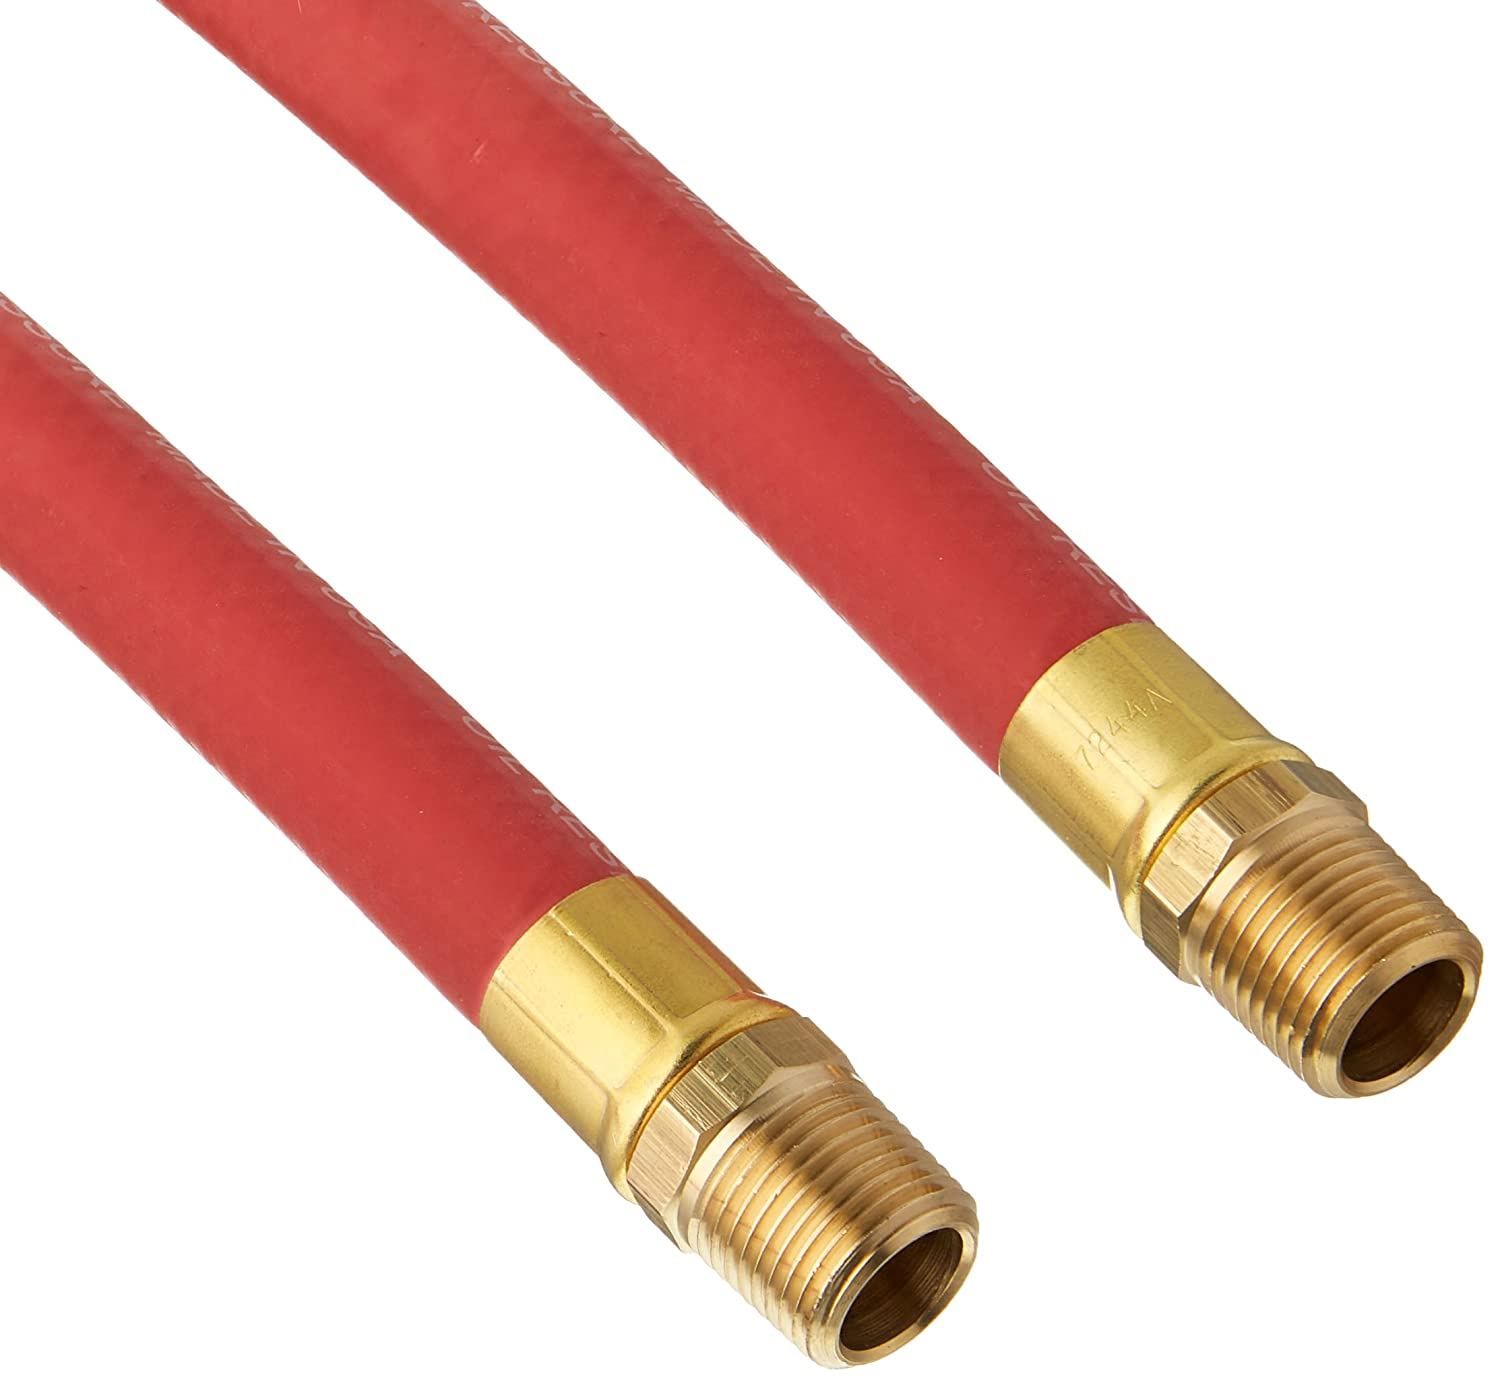 Goodyear 12709 Red Rubber Air Hose 1/2-Inch x 50-Feet 250 PSI